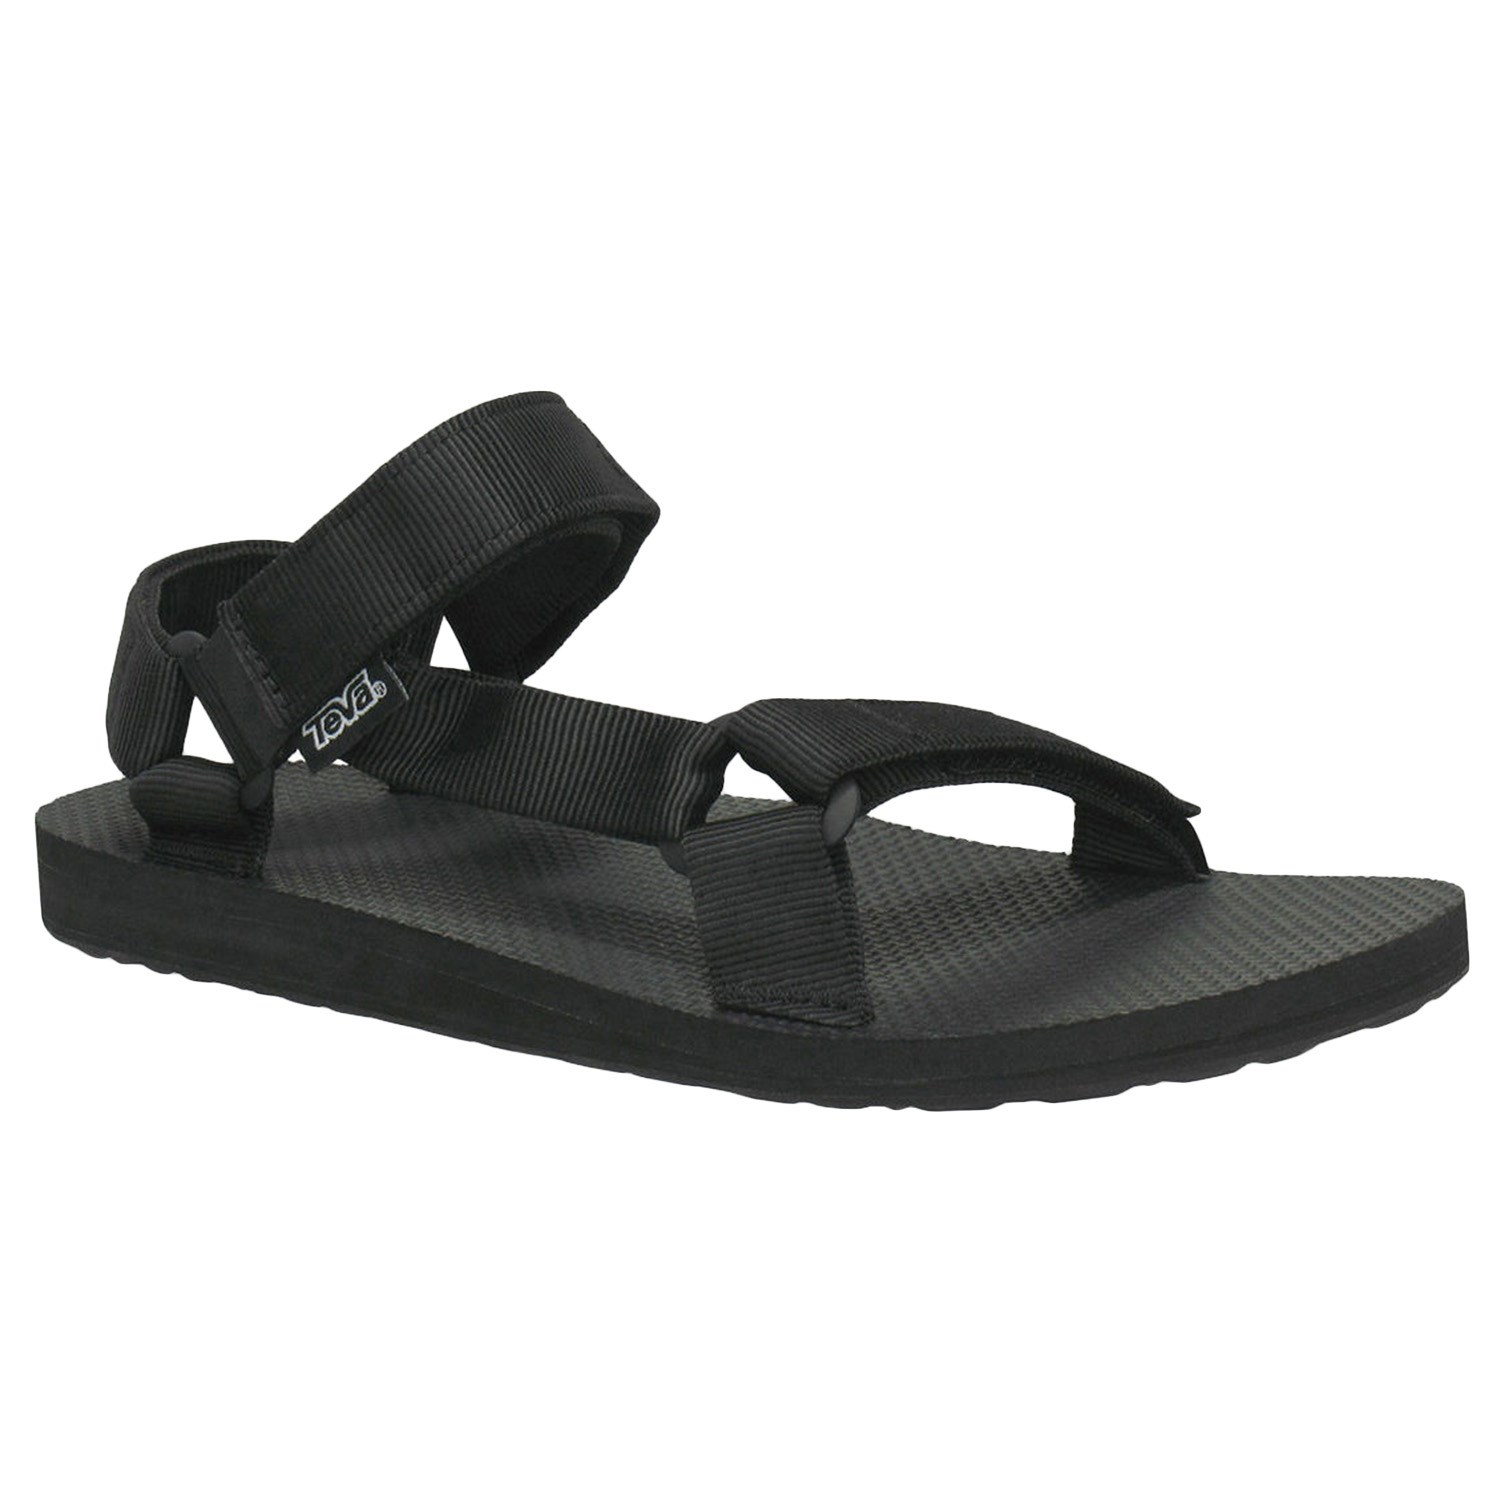 72c5df0bb63a Teva Original Universal Sandals